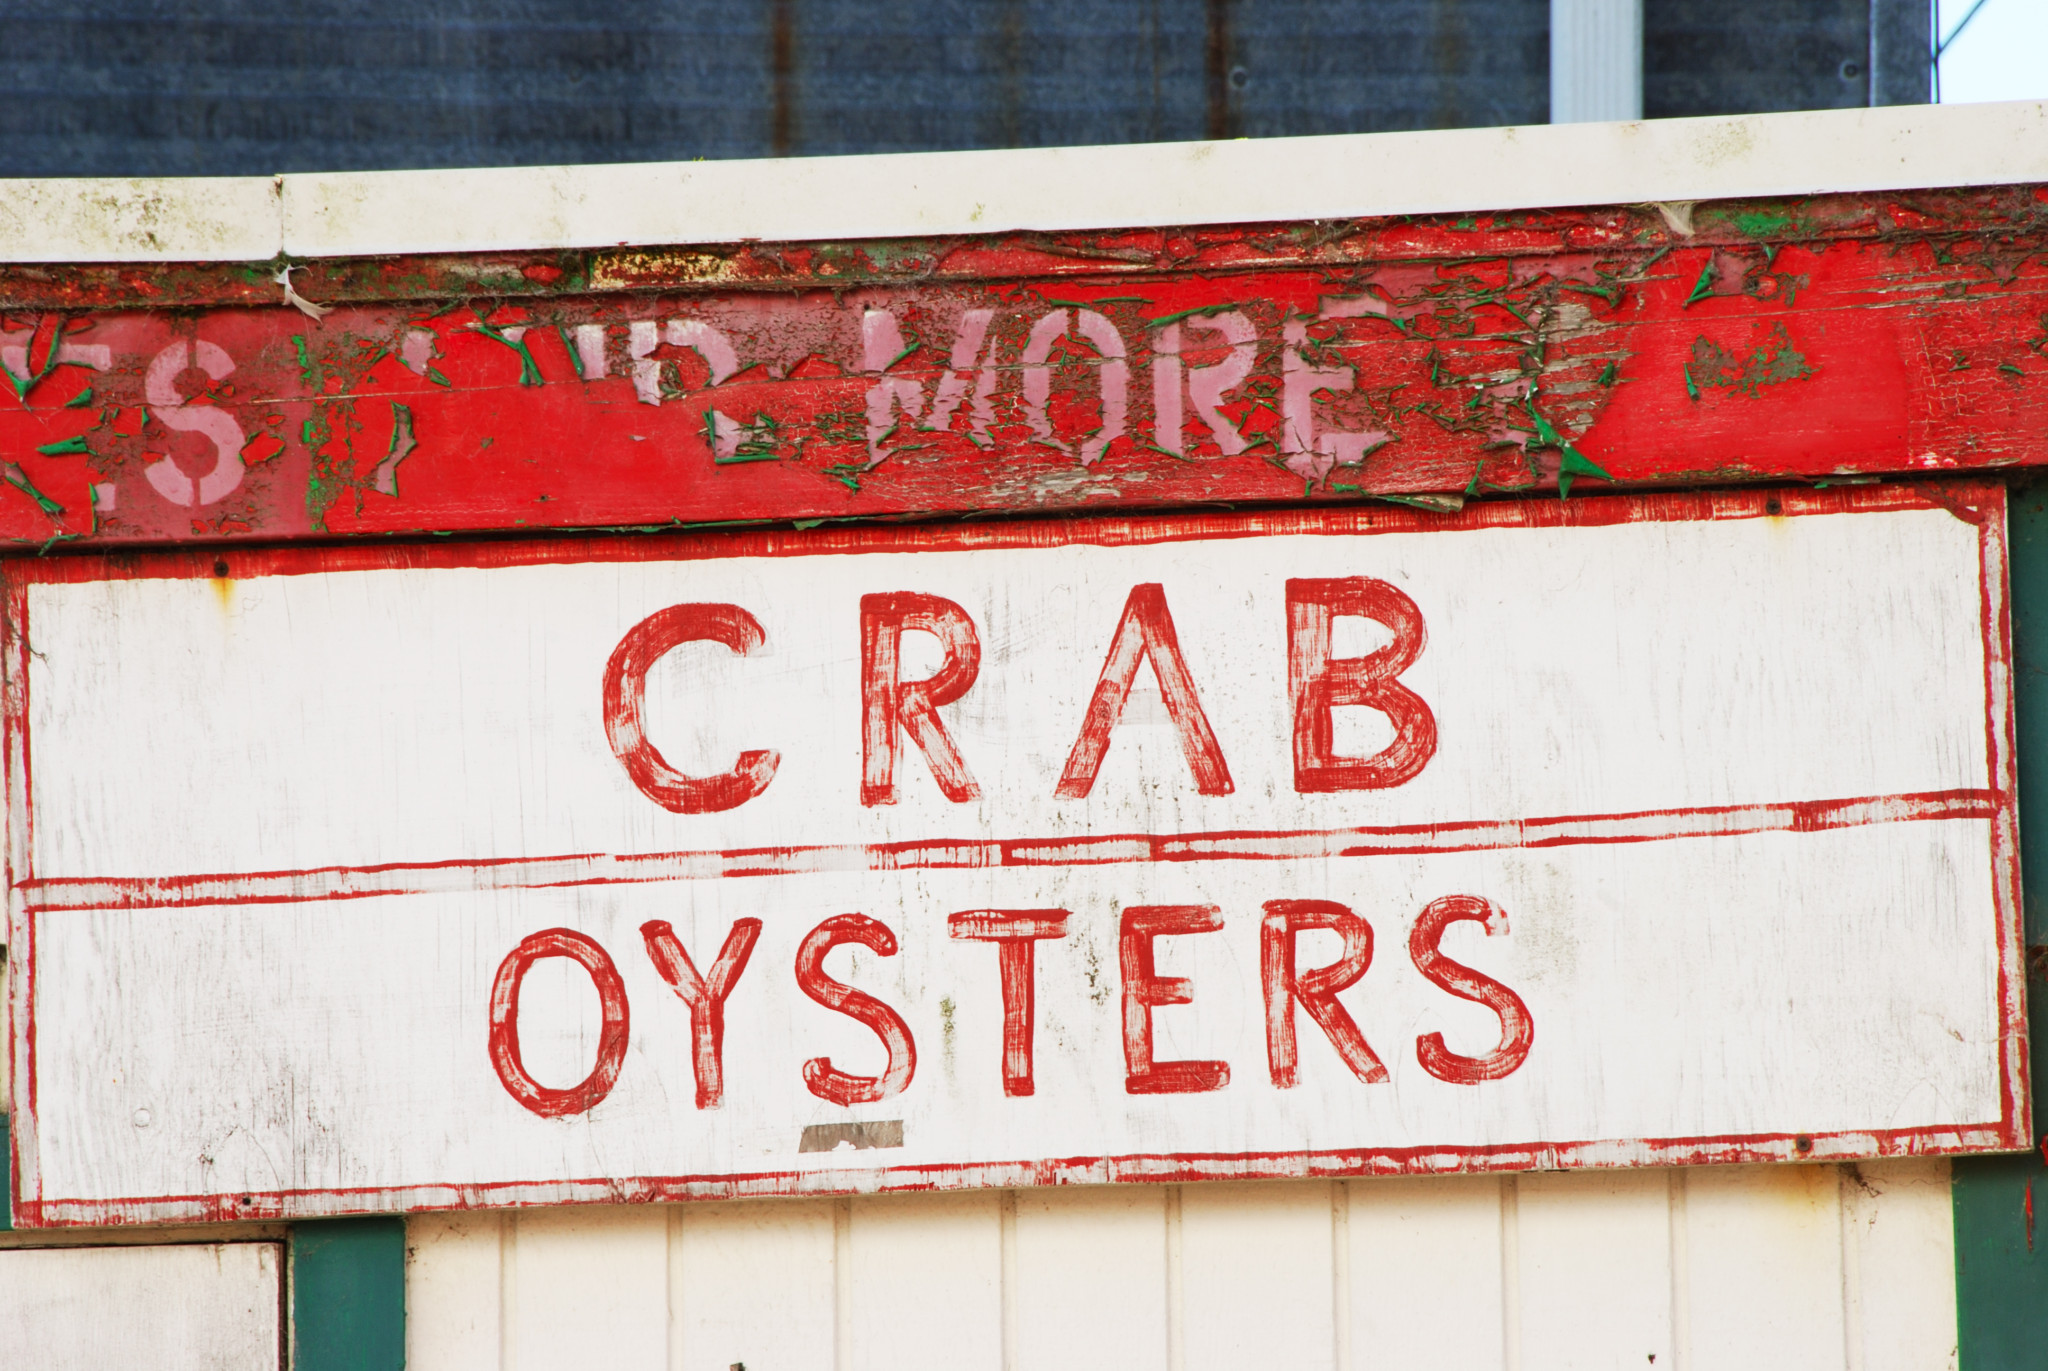 oyster crab sign